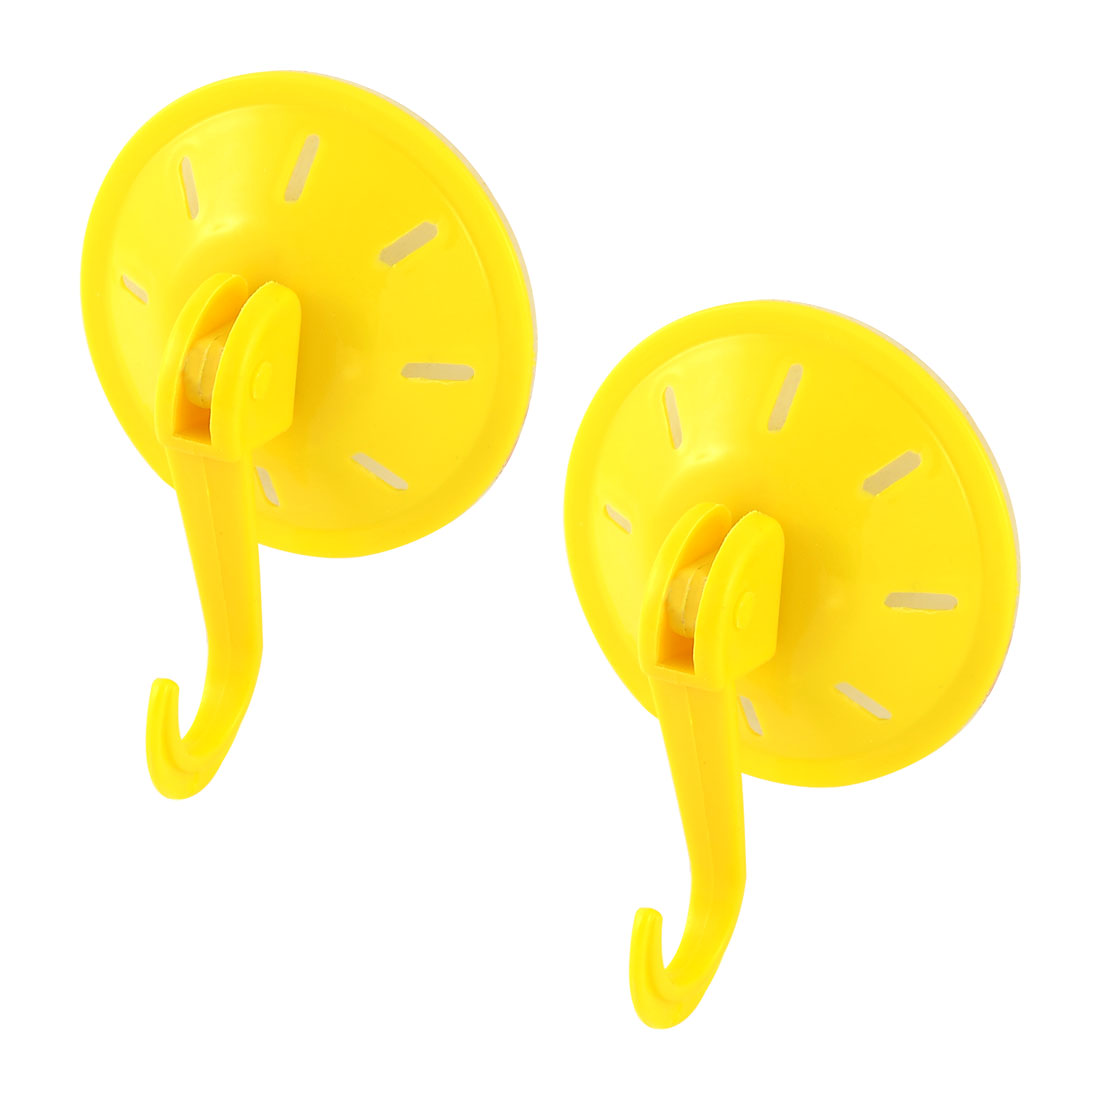 Household Bathroom Plastic Wall-mounted Single Hanger Suction Cup Hook Yellow 2pcs